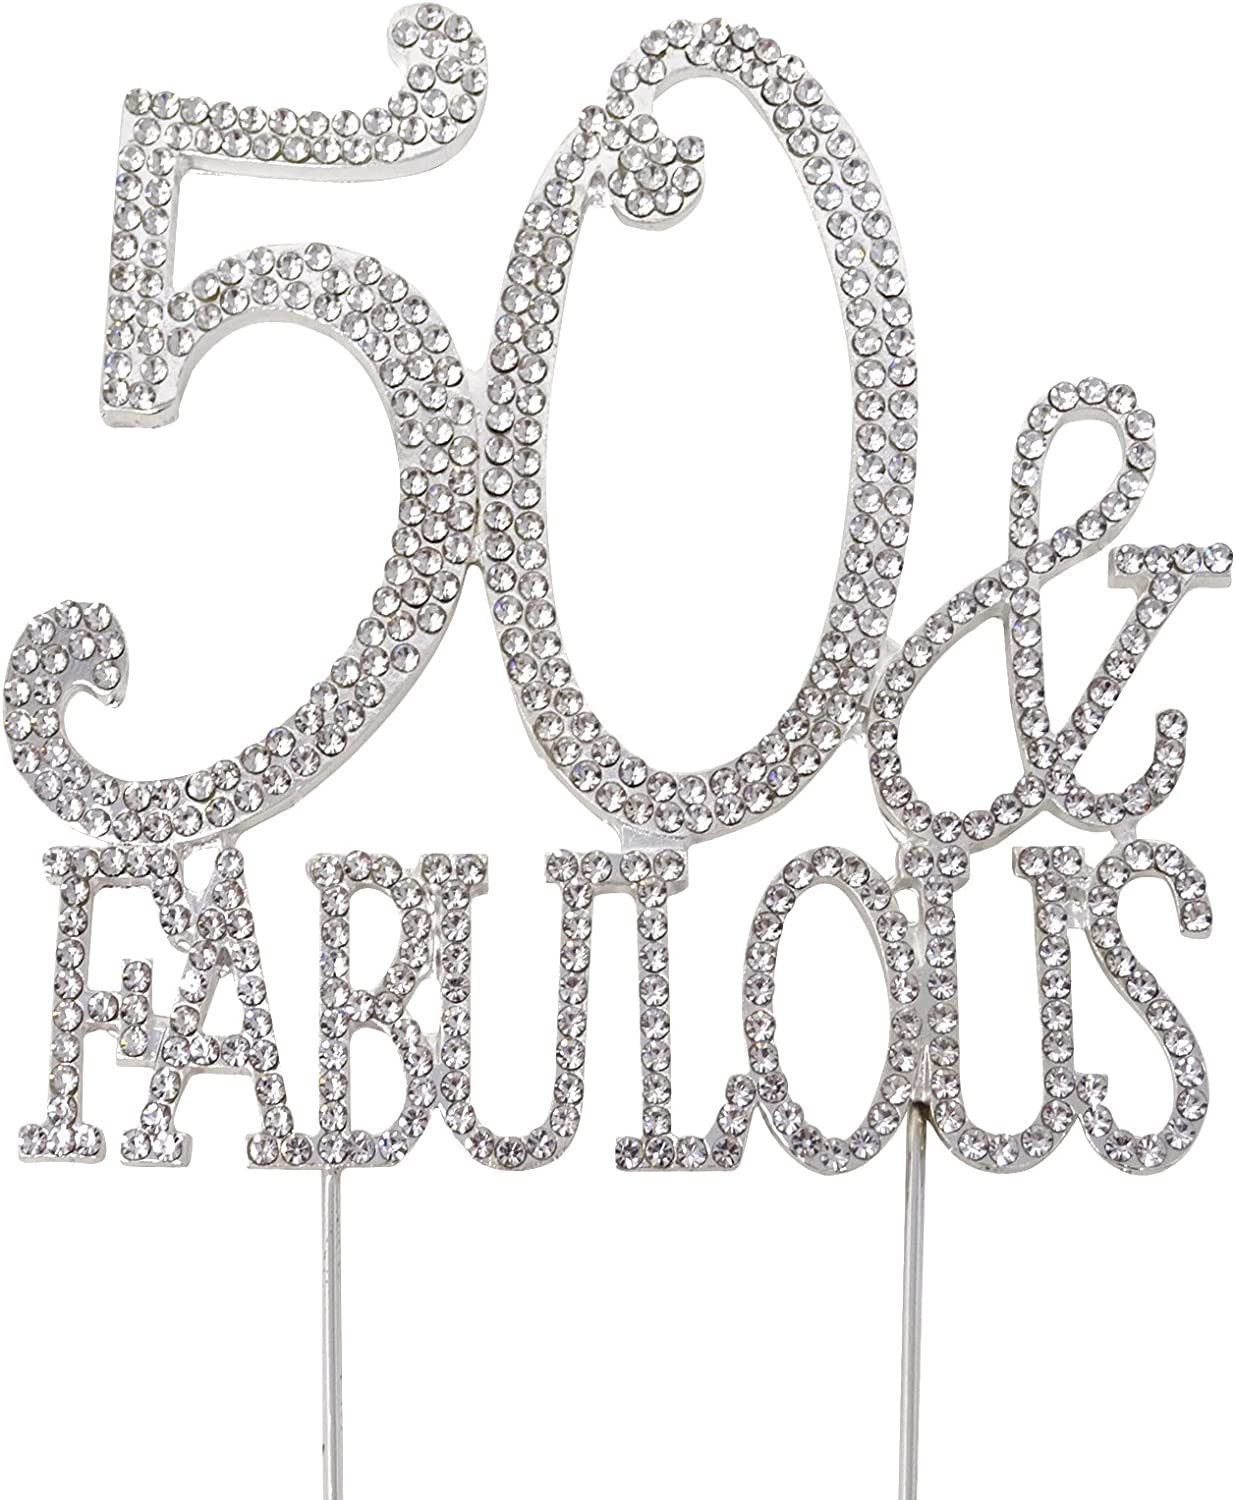 HONBAY 50 Fabulous Cake Topper Premium Crystal Sparkly Rhinest Challenge the lowest price of Spring new work one after another Japan ☆